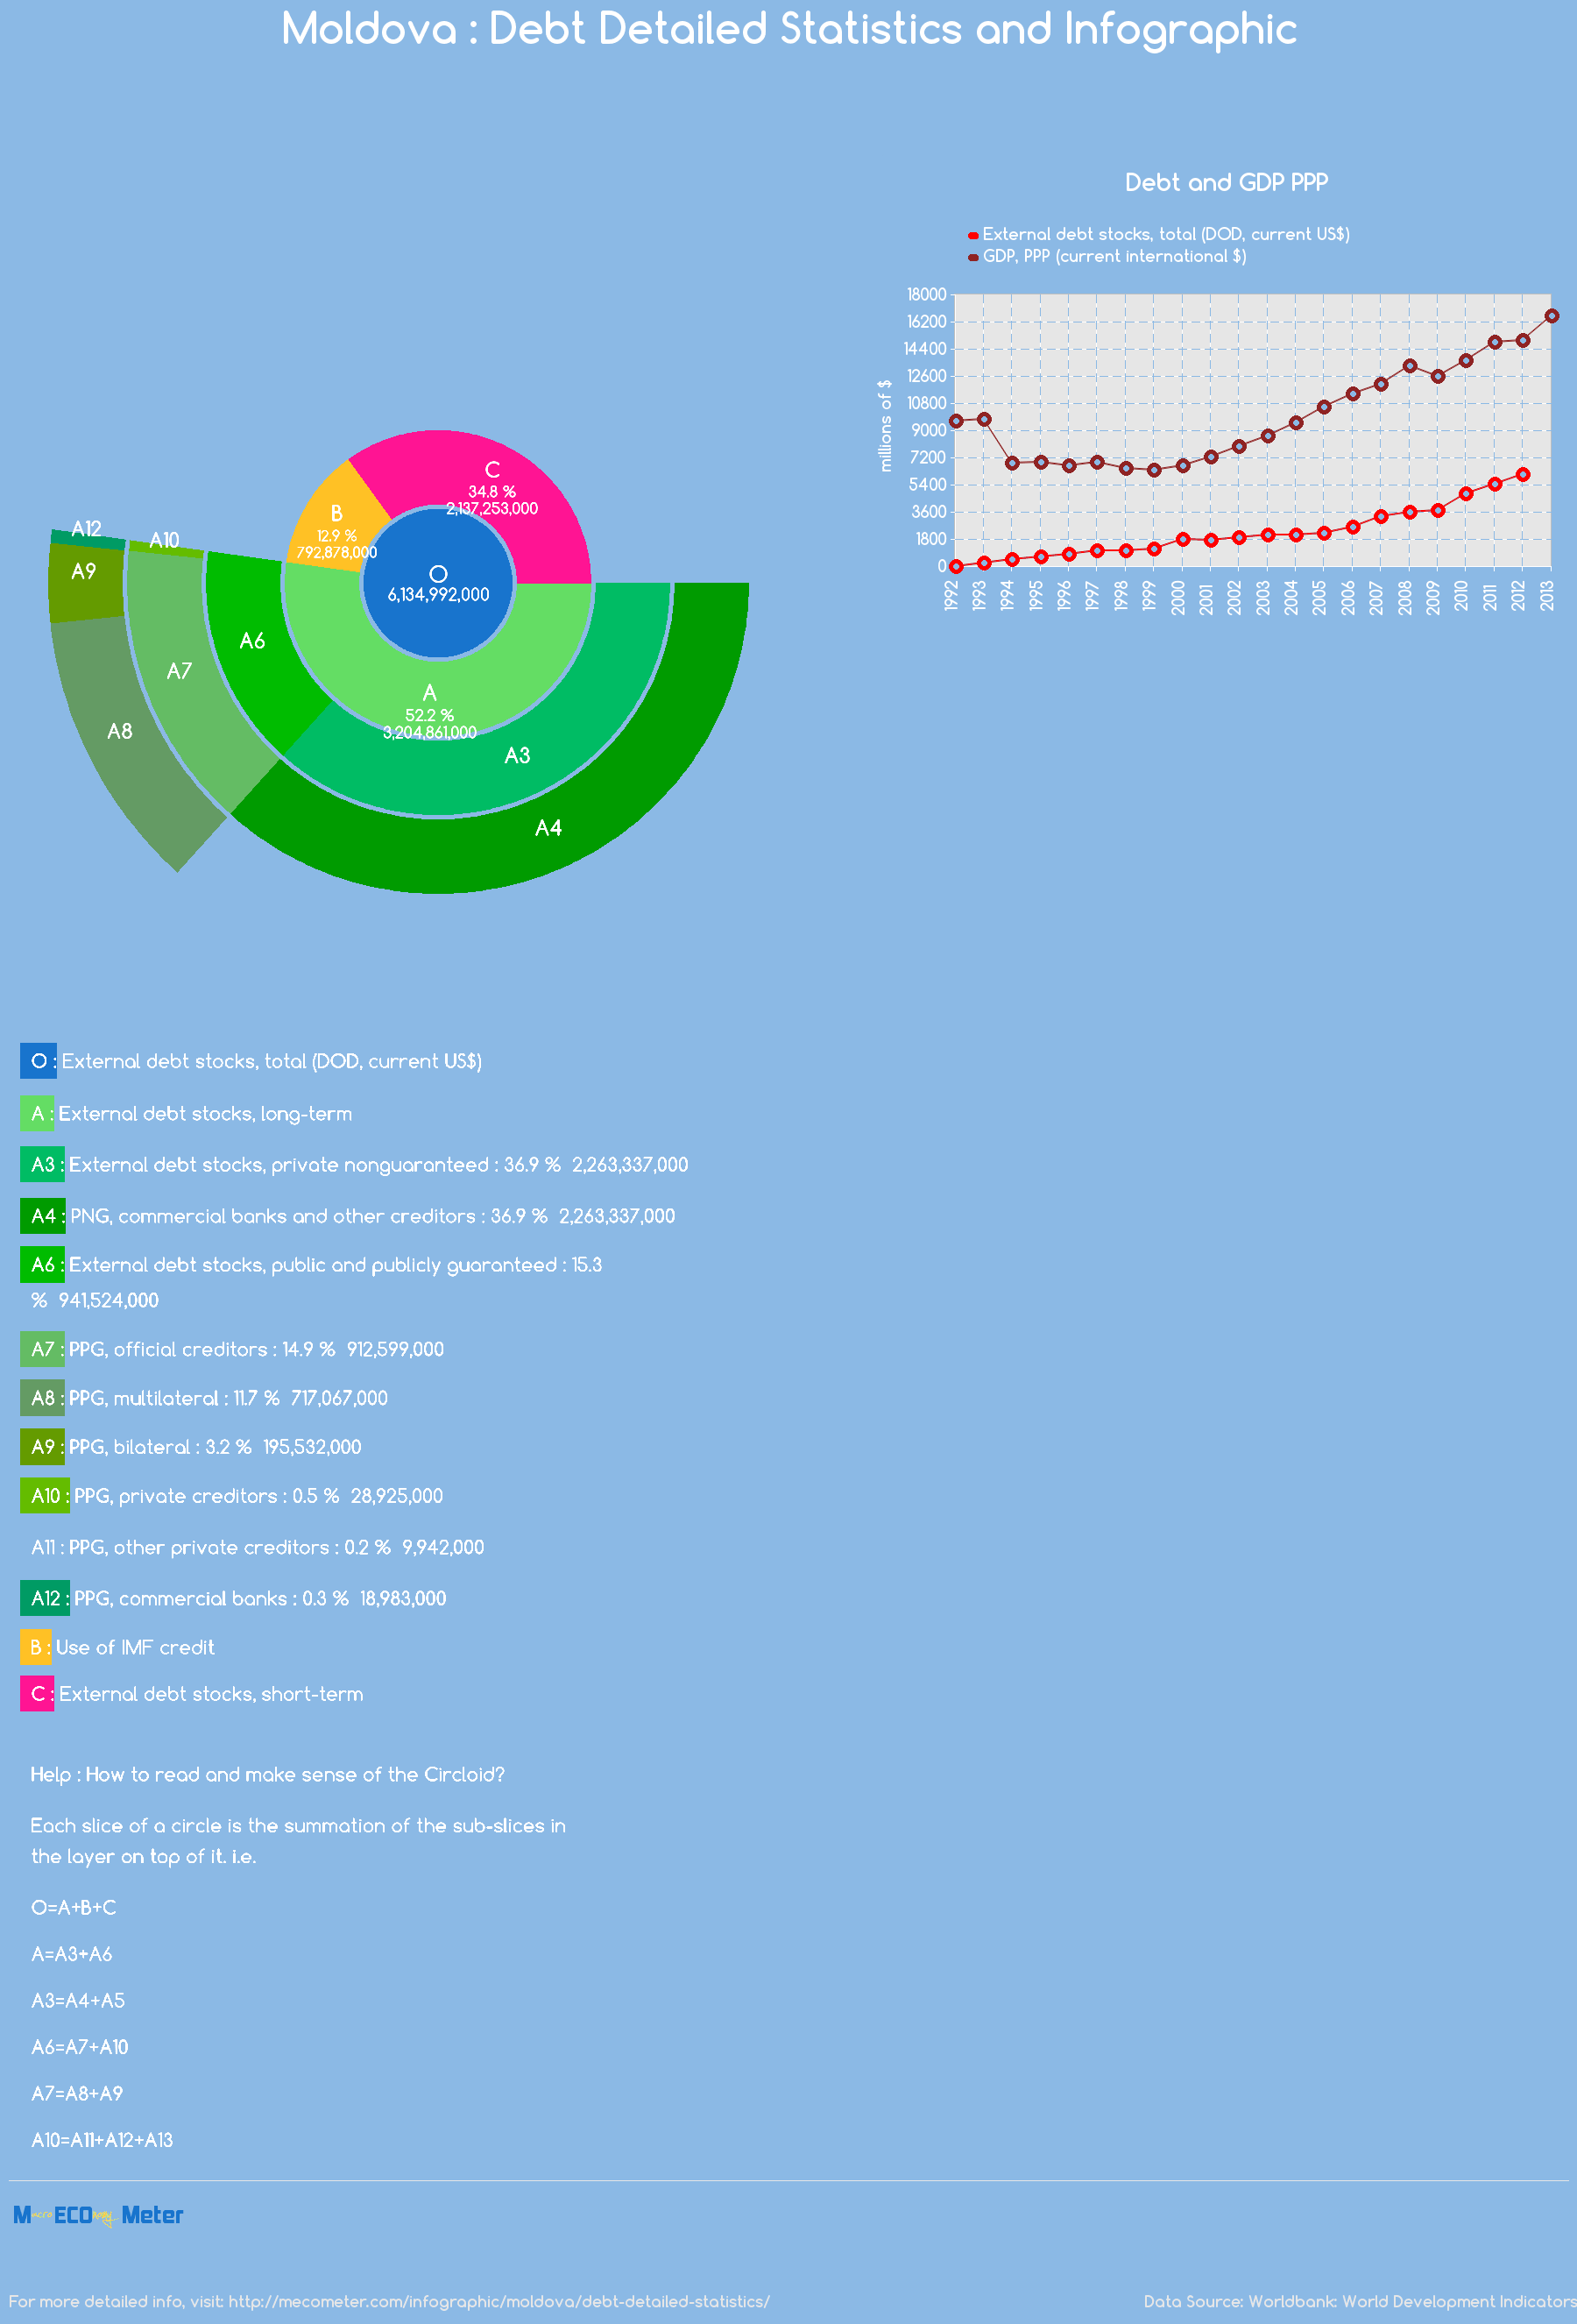 Moldova : Debt Detailed Statistics and Infographic